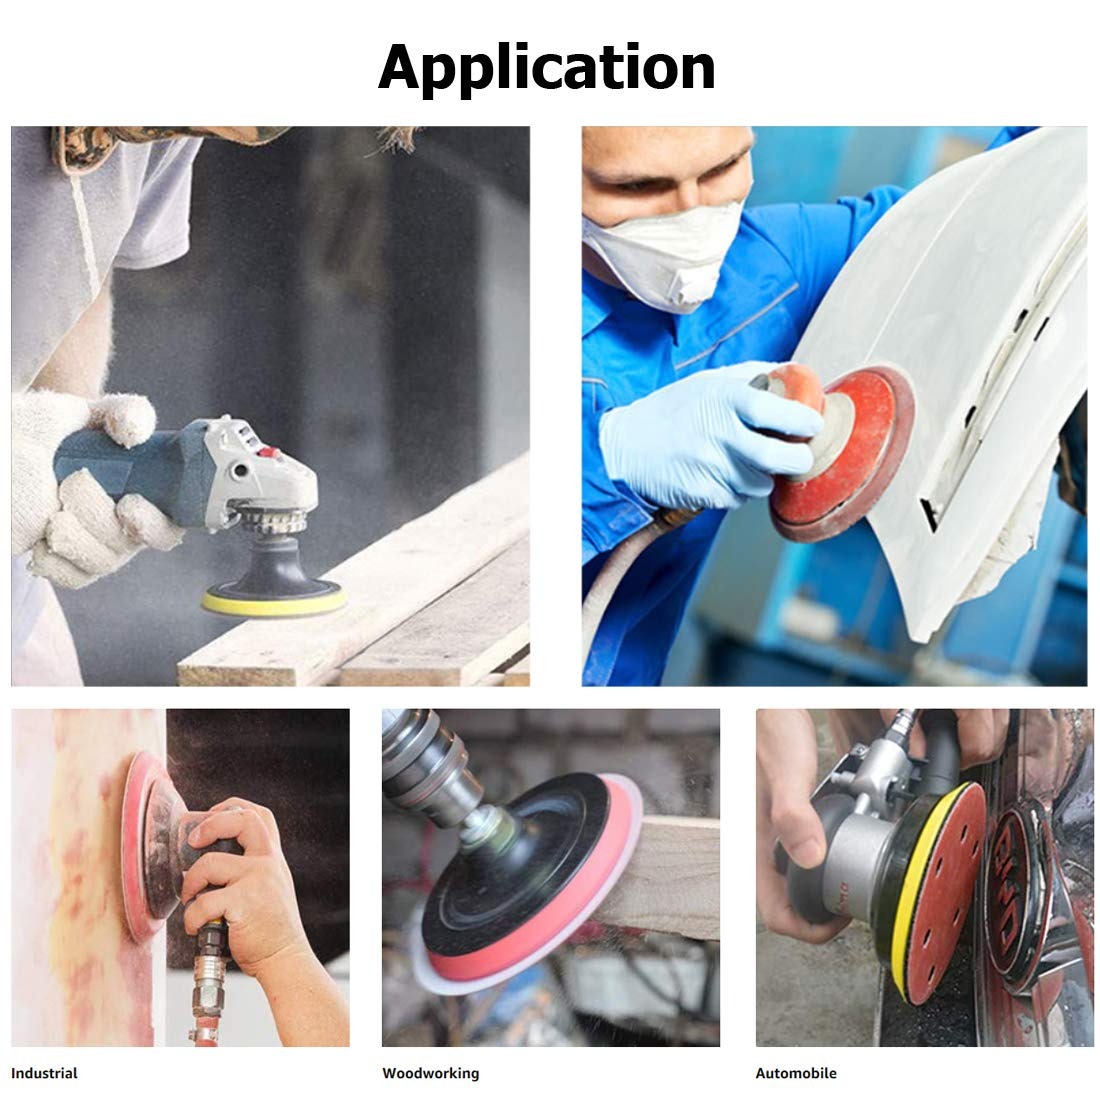 Sandpaper Metal Sanding 5 Inch Hook and Loop Sanding Discs for Wood Furniture Finishing 110pcs Sand Paper Variety Pack Automotive Polishing 40 60 80 100 120 240 320 400 600 800 1000 Grits